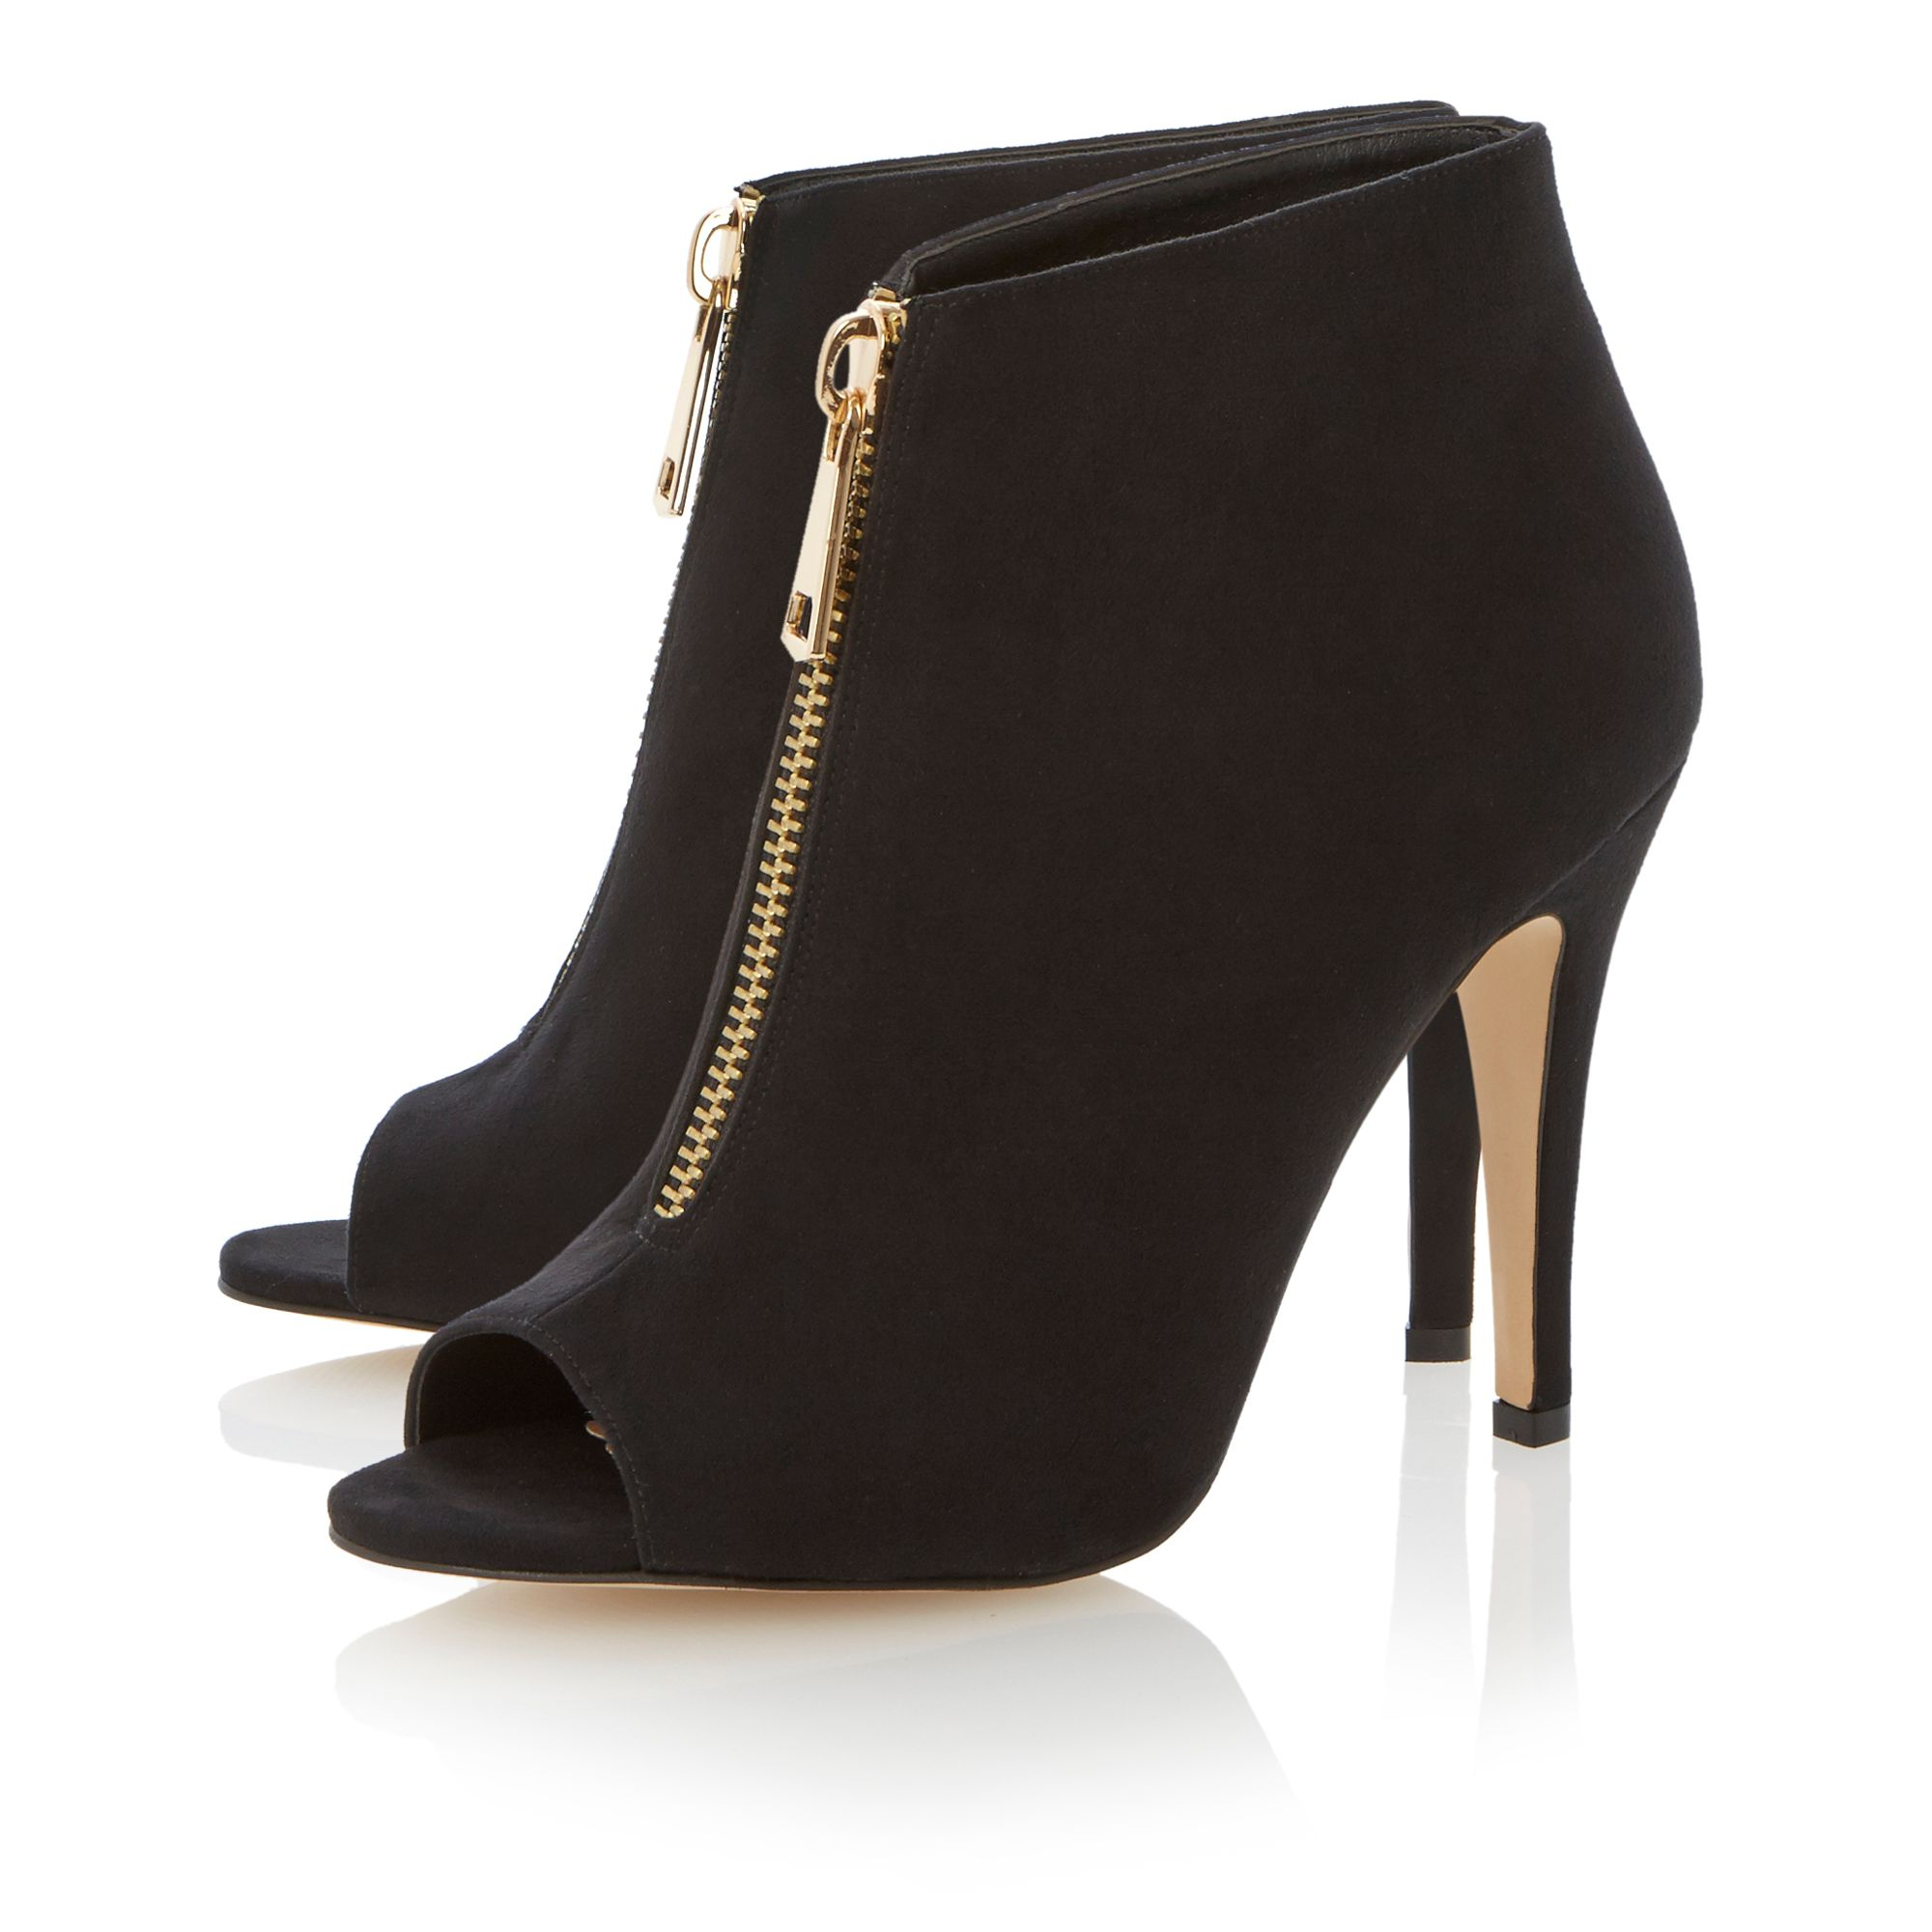 Noleeta peeptoe stiletto low boots